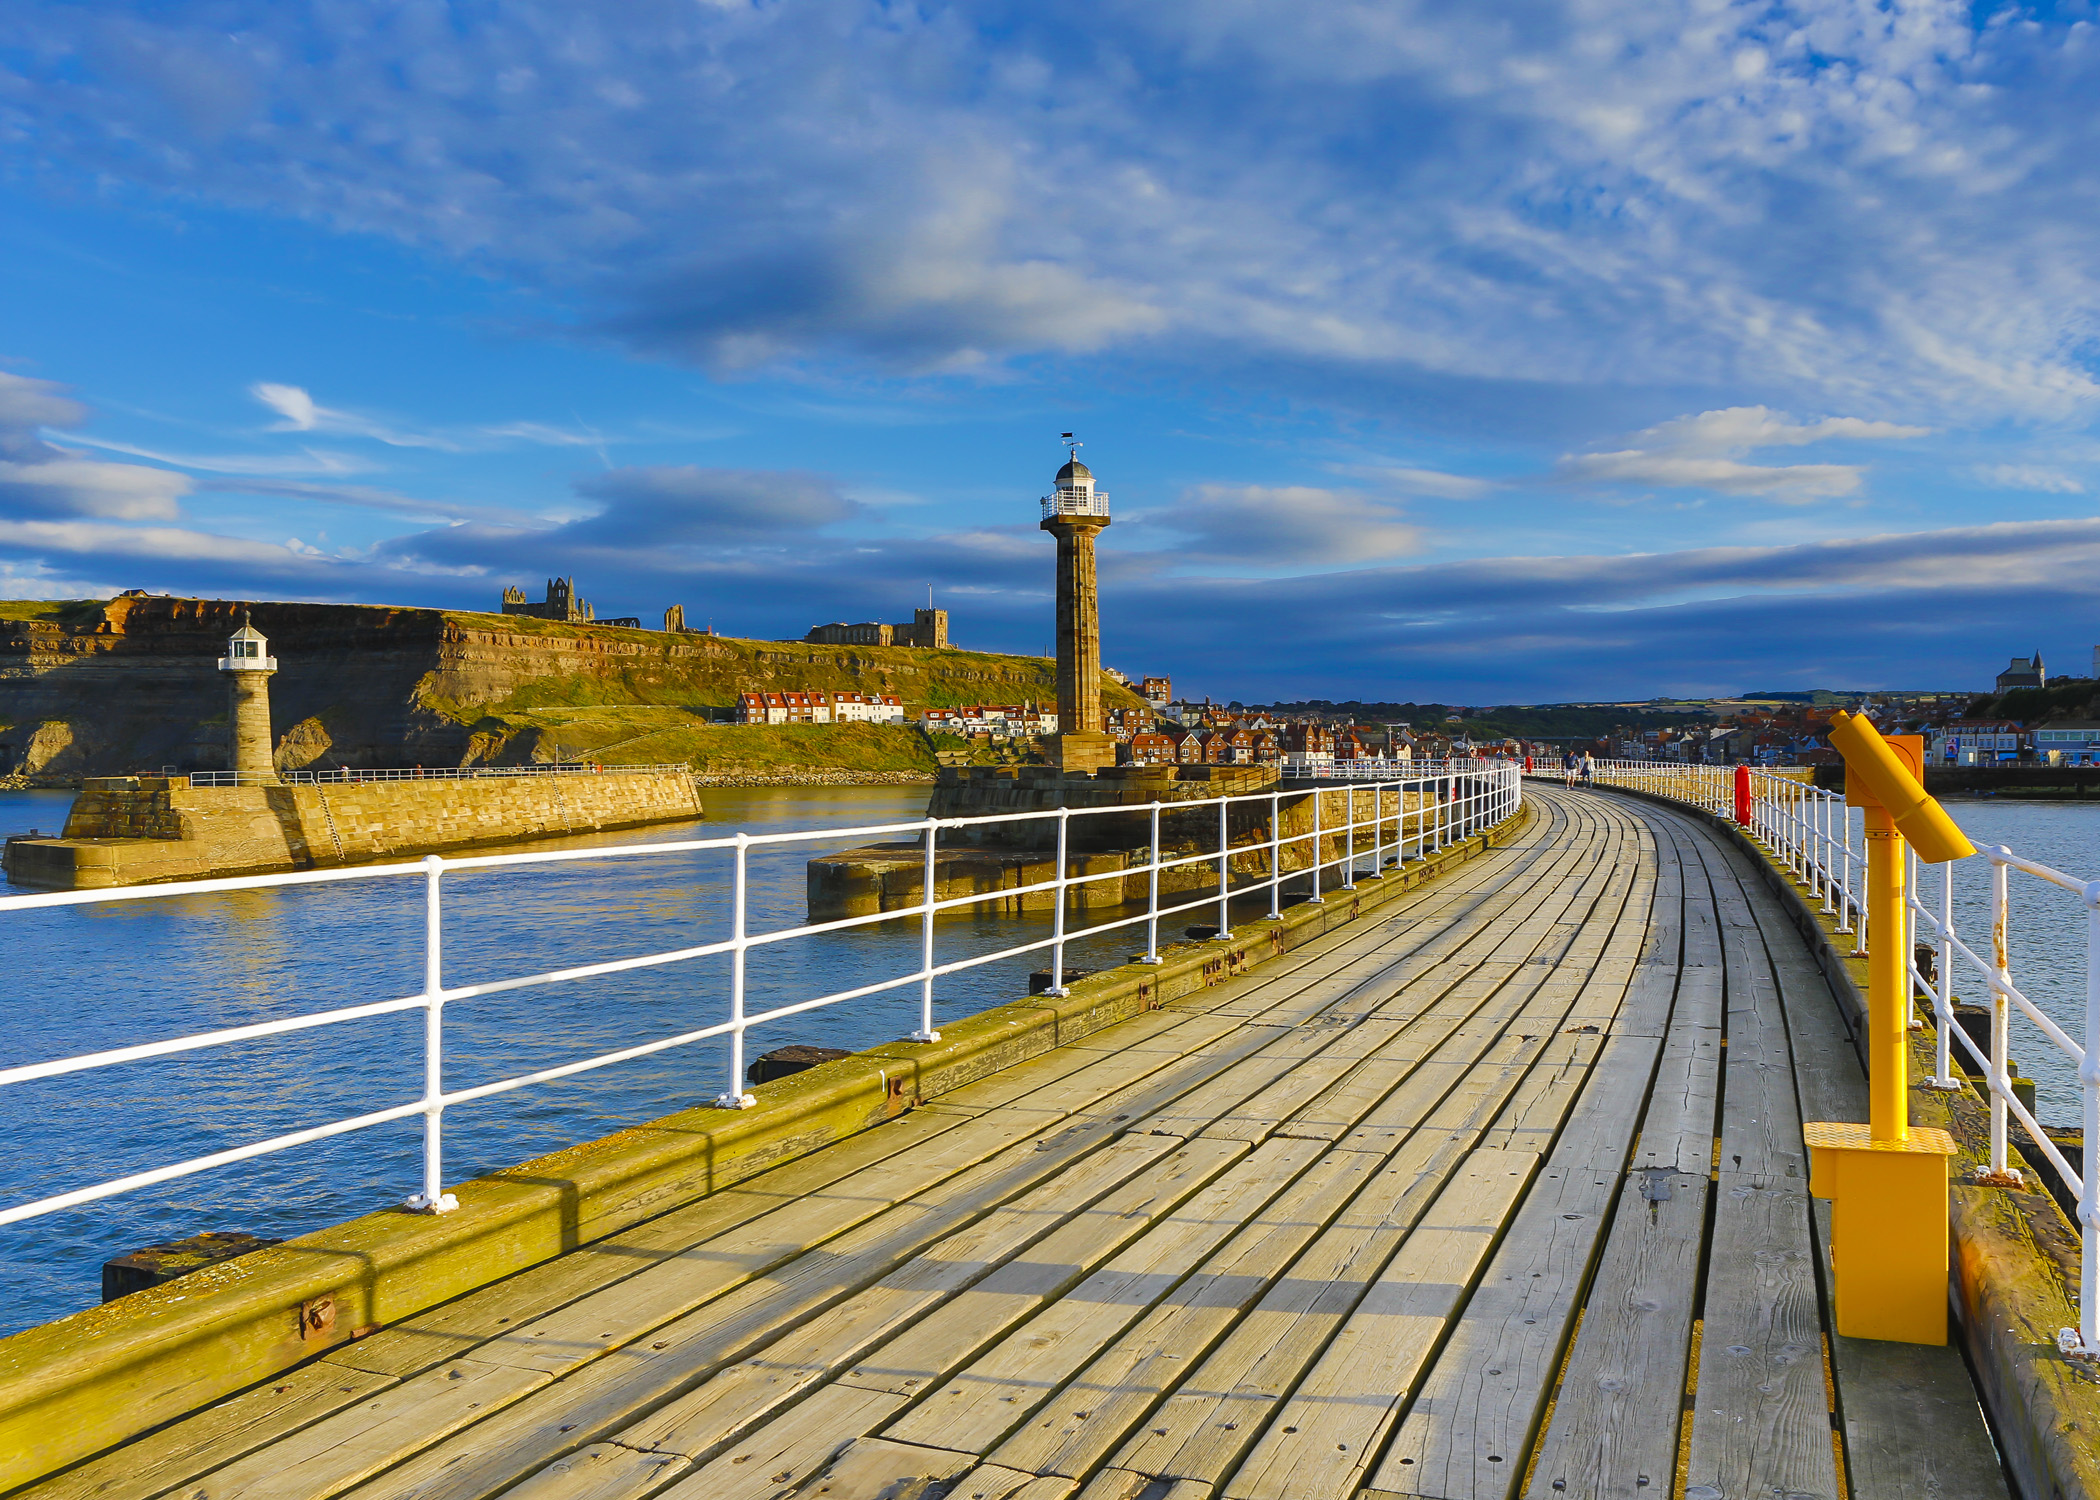 Pics of Whitby pier